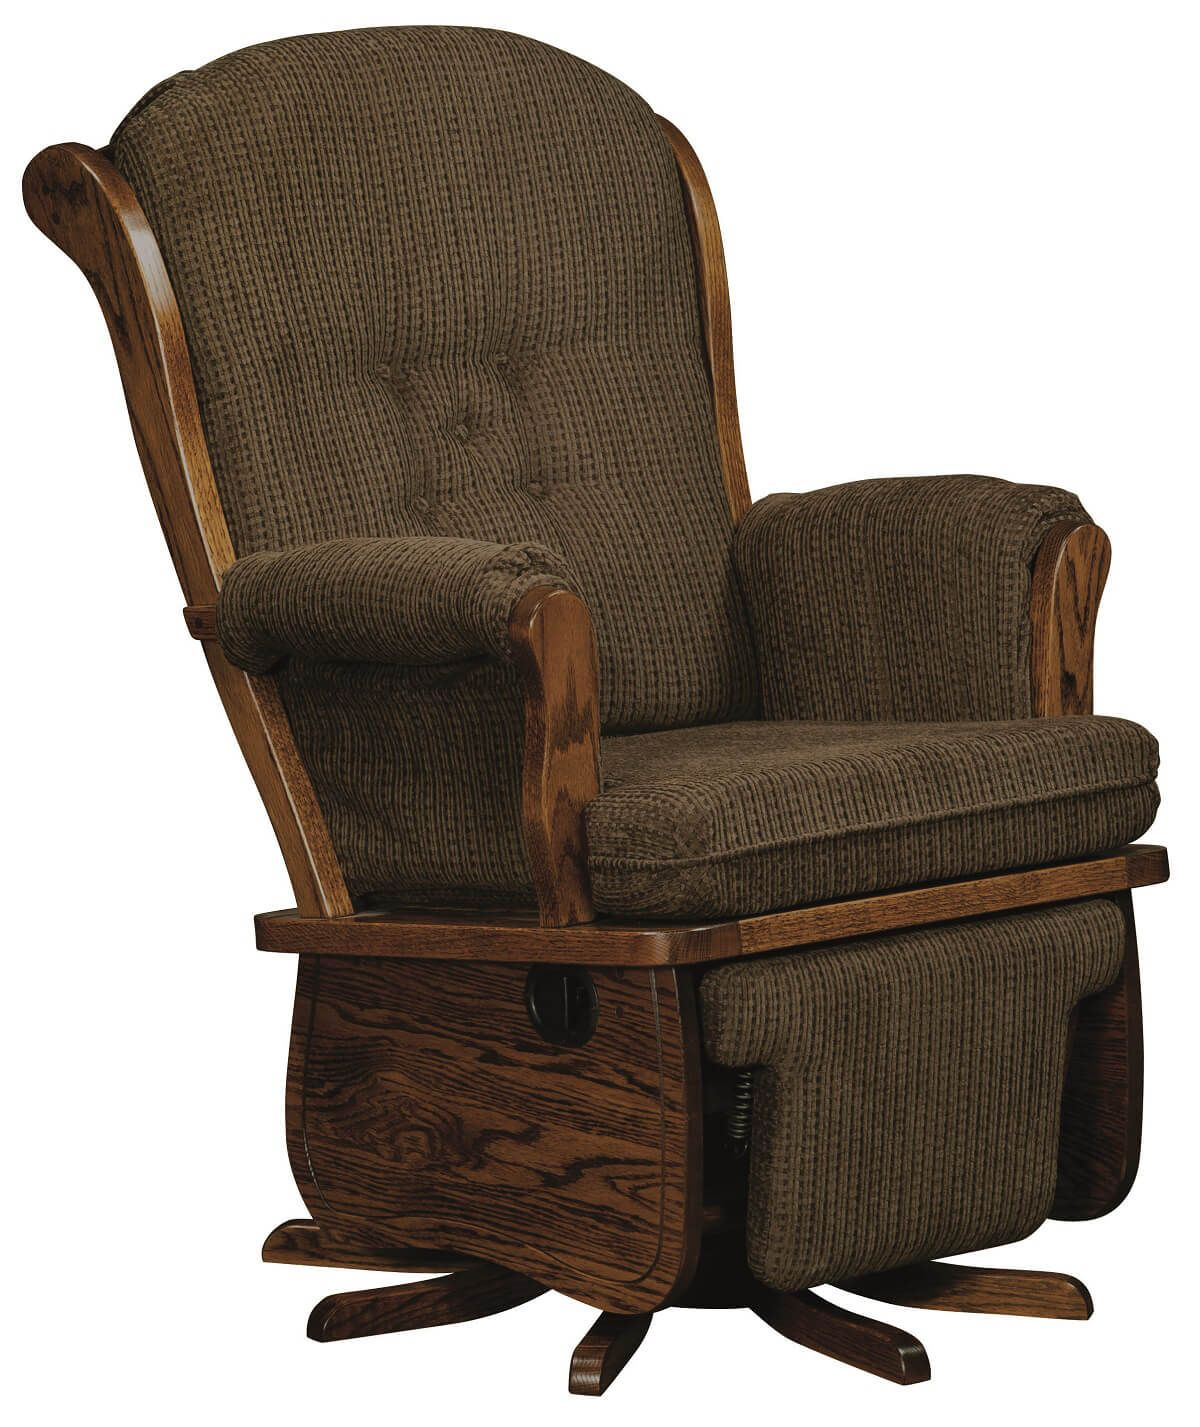 rocking chair footrest custom dining room covers yatesville traditional swivel recliner countryside amish